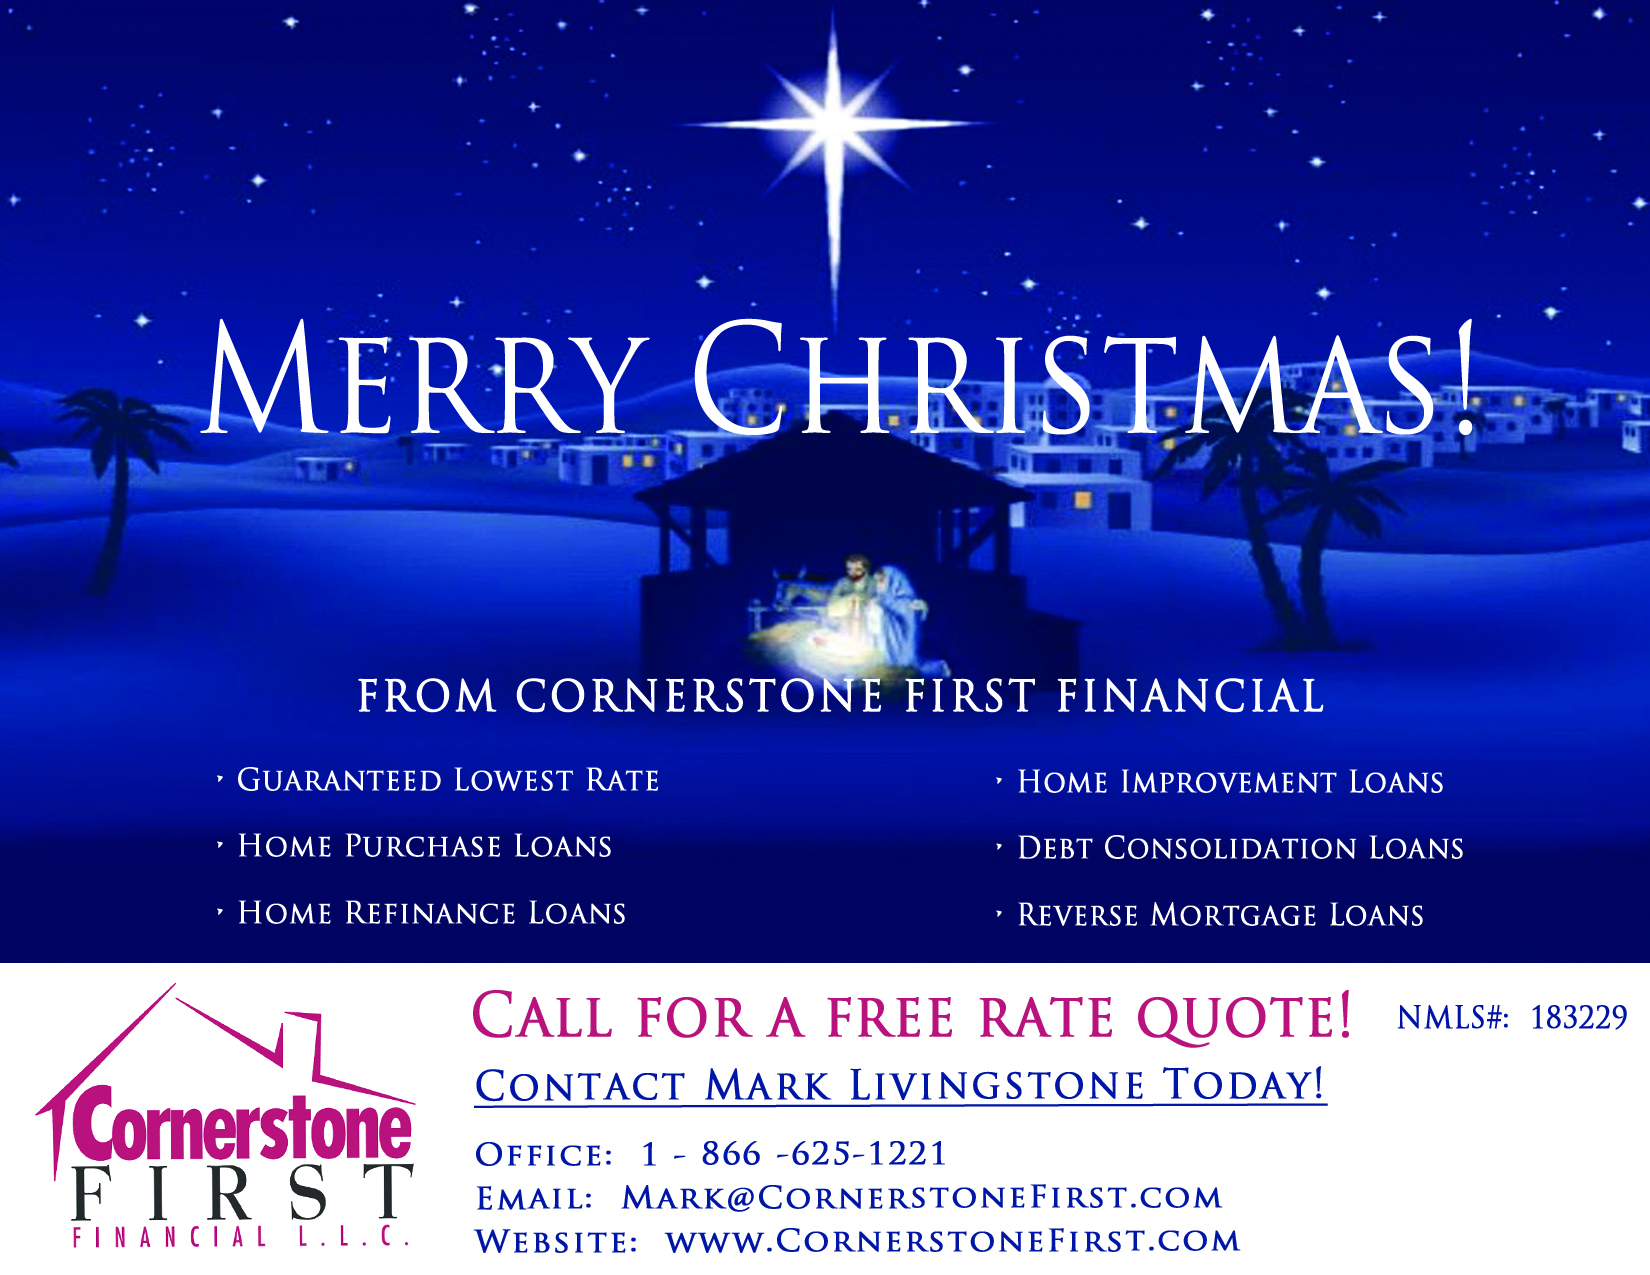 Merry Christmas From Cornerstone First Financial ...